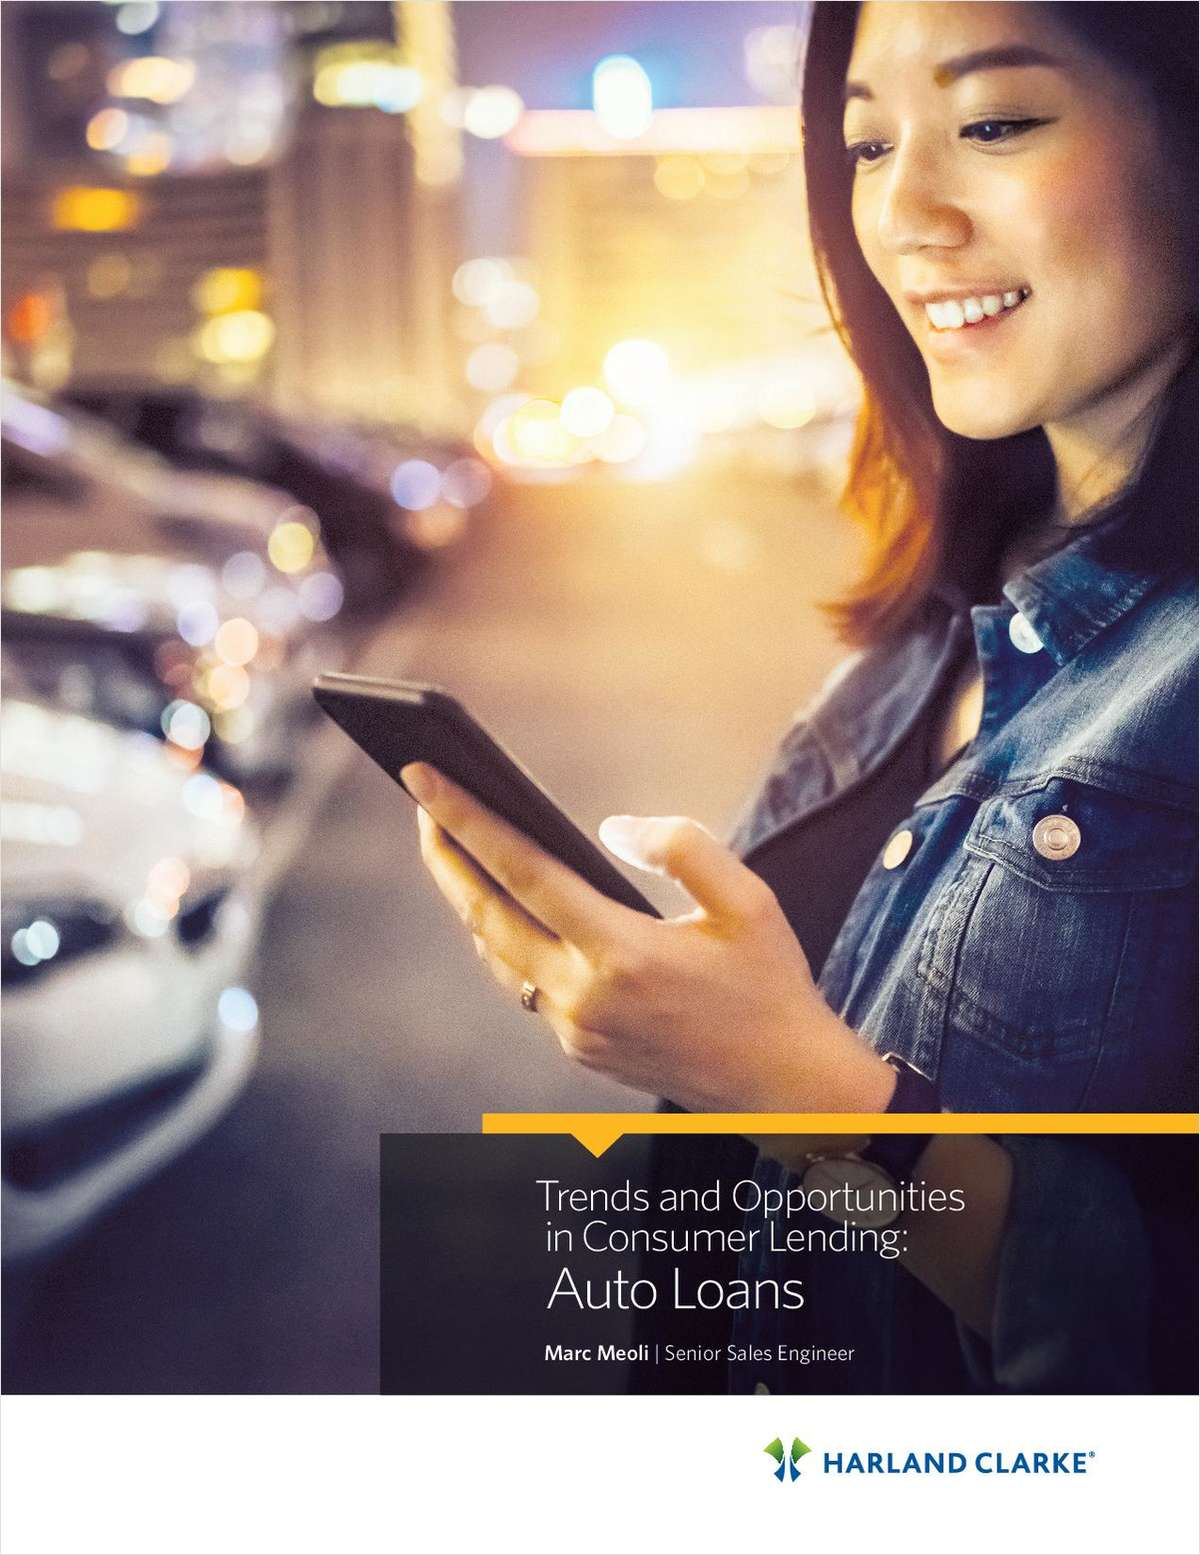 Trends and Opportunities in Consumer Lending: Auto Loans